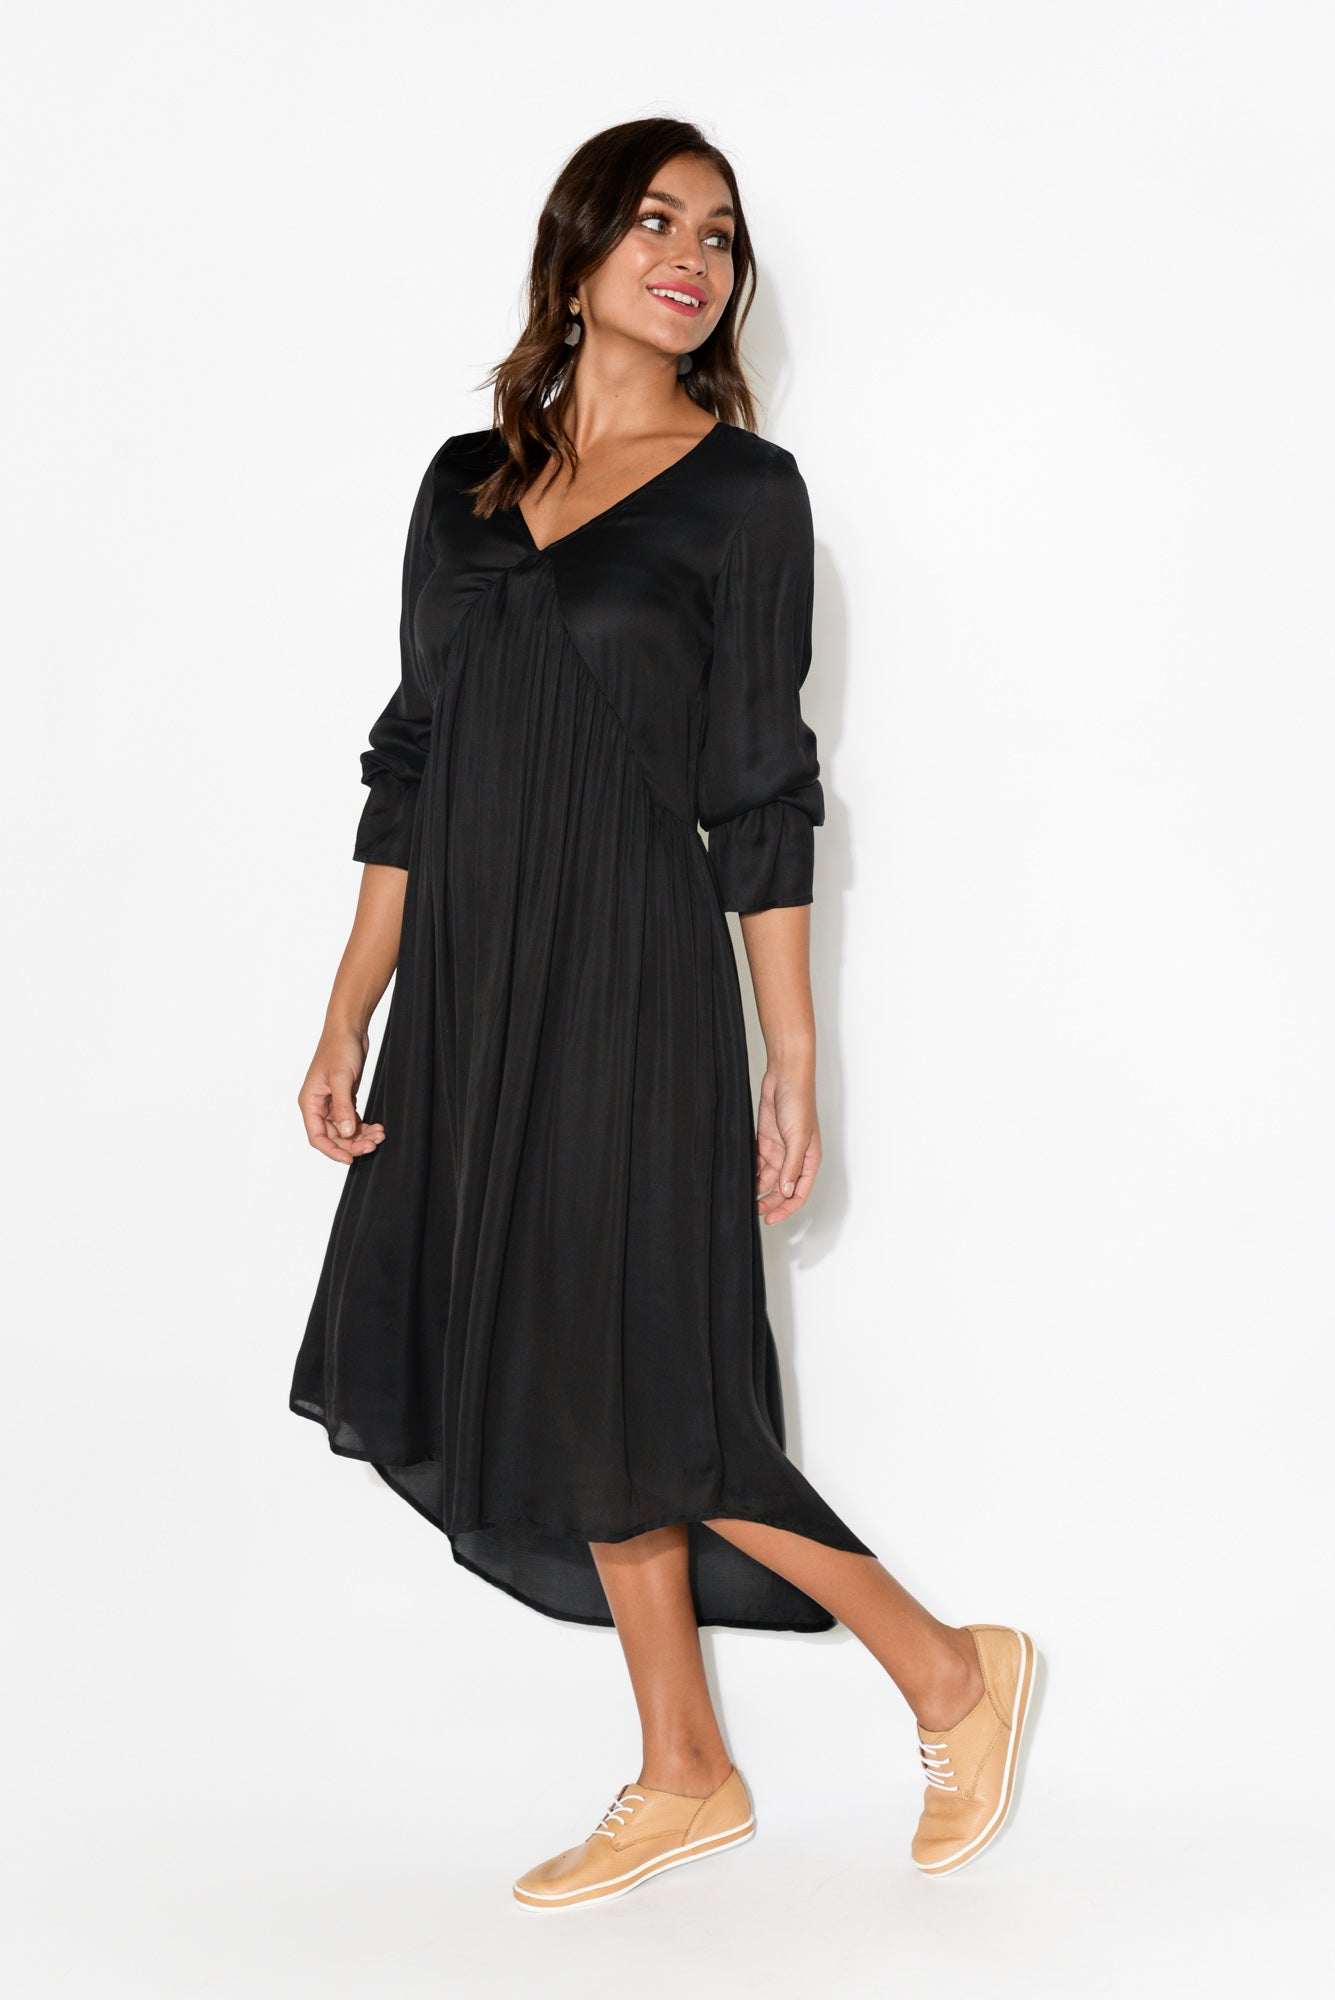 Kerena Black Gather Front Dress